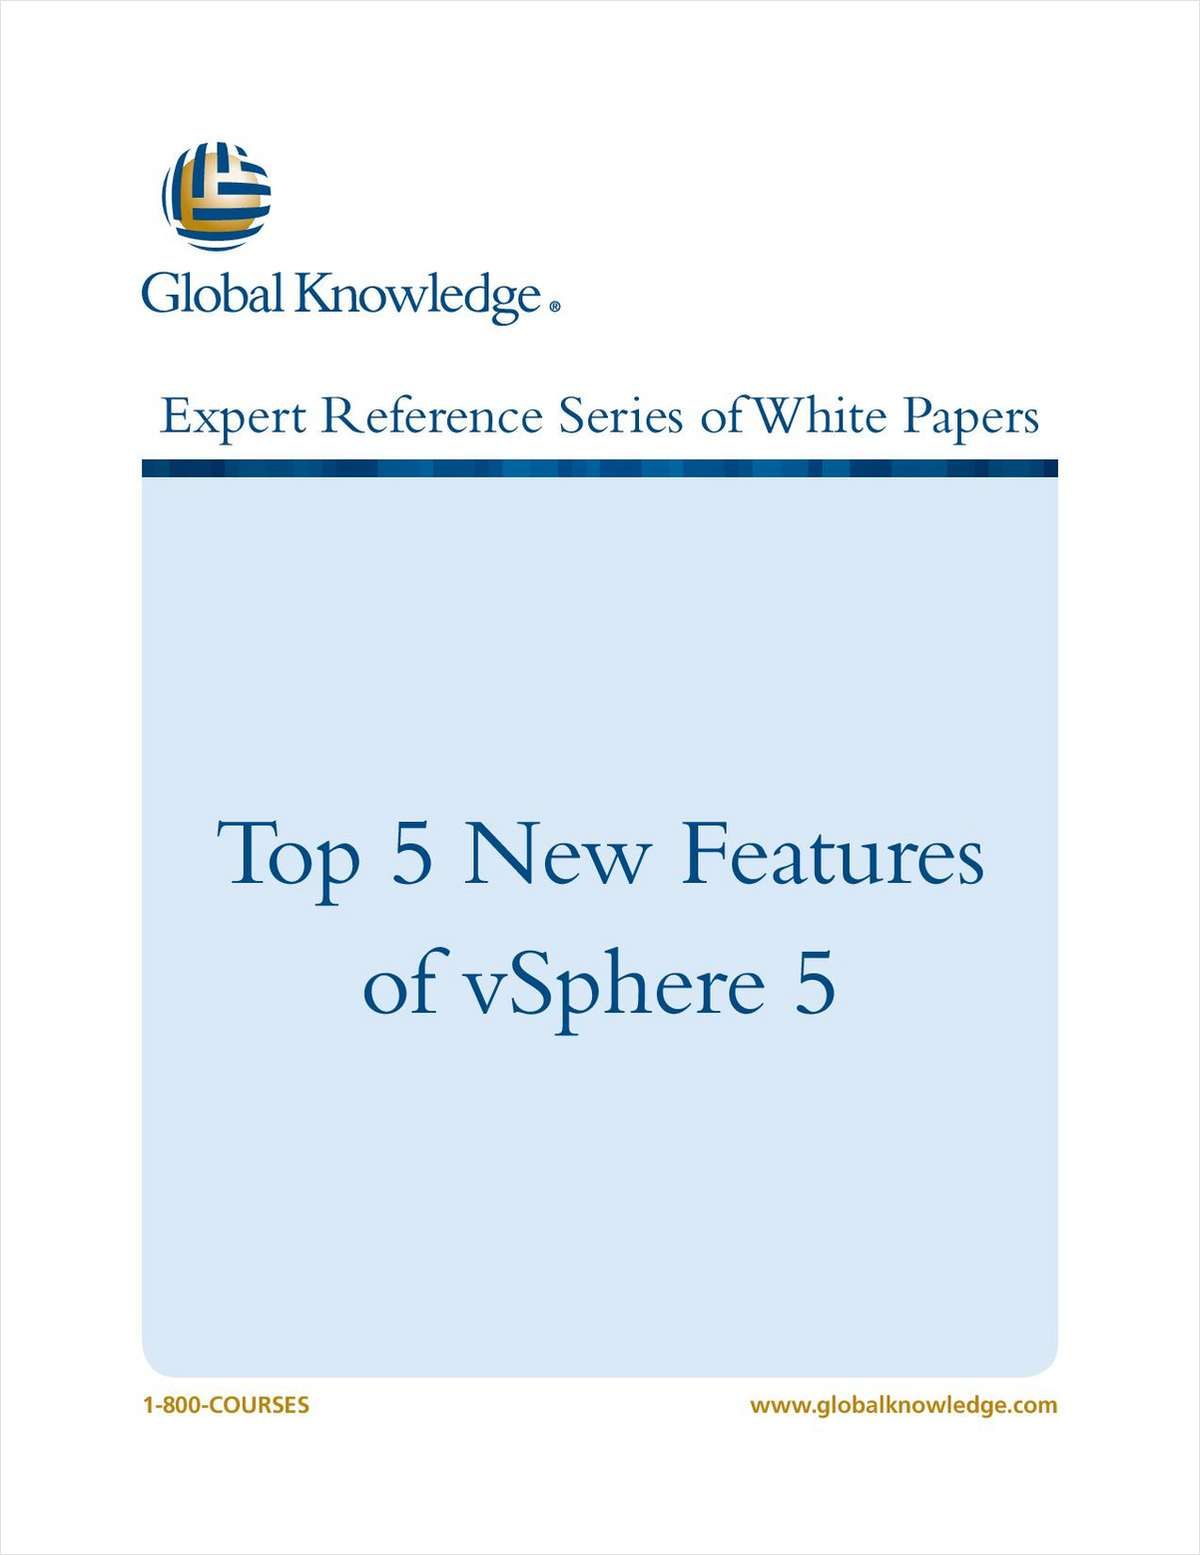 Top 5 New Features of vSphere 5